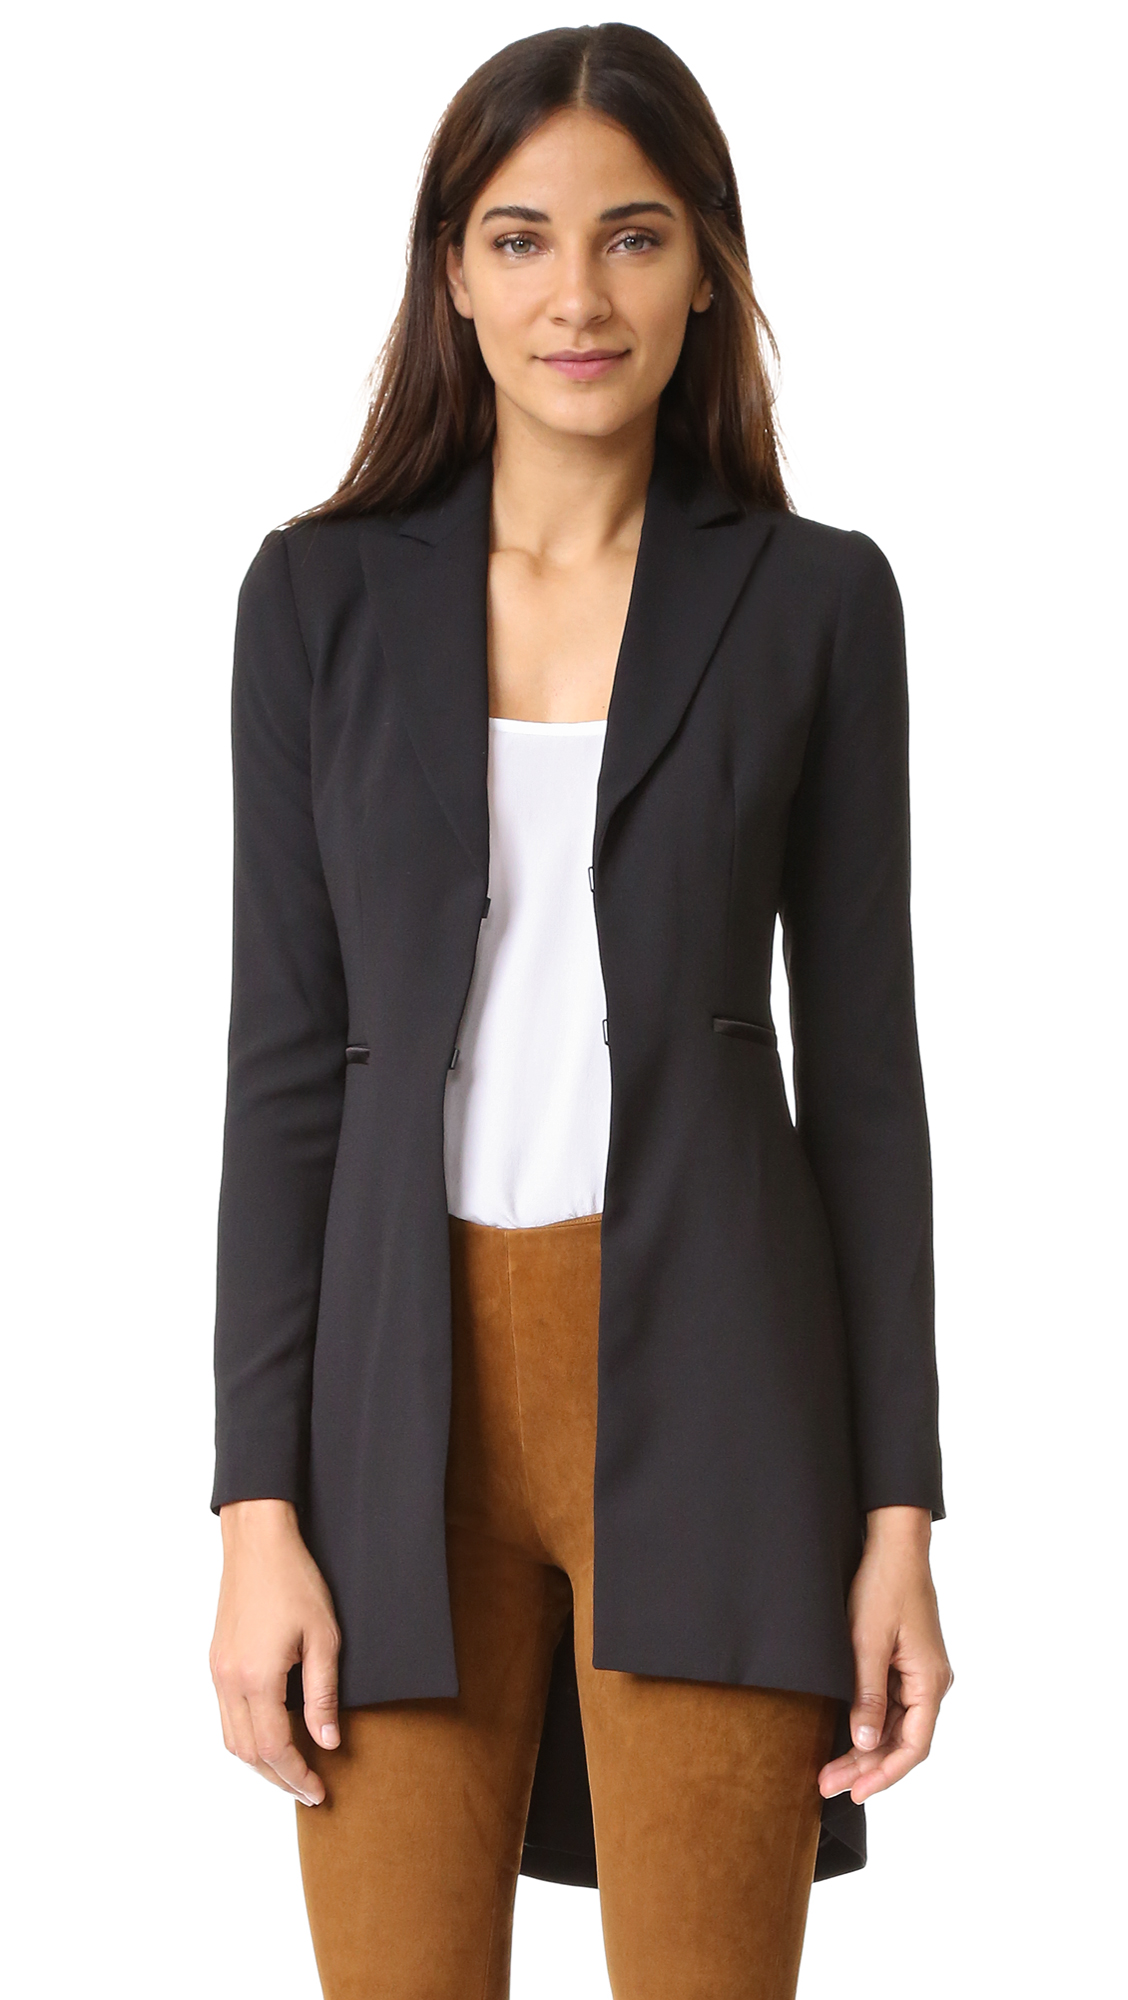 Alice + Olivia Jordyn Collared Back Pleat Blazer - Black at Shopbop